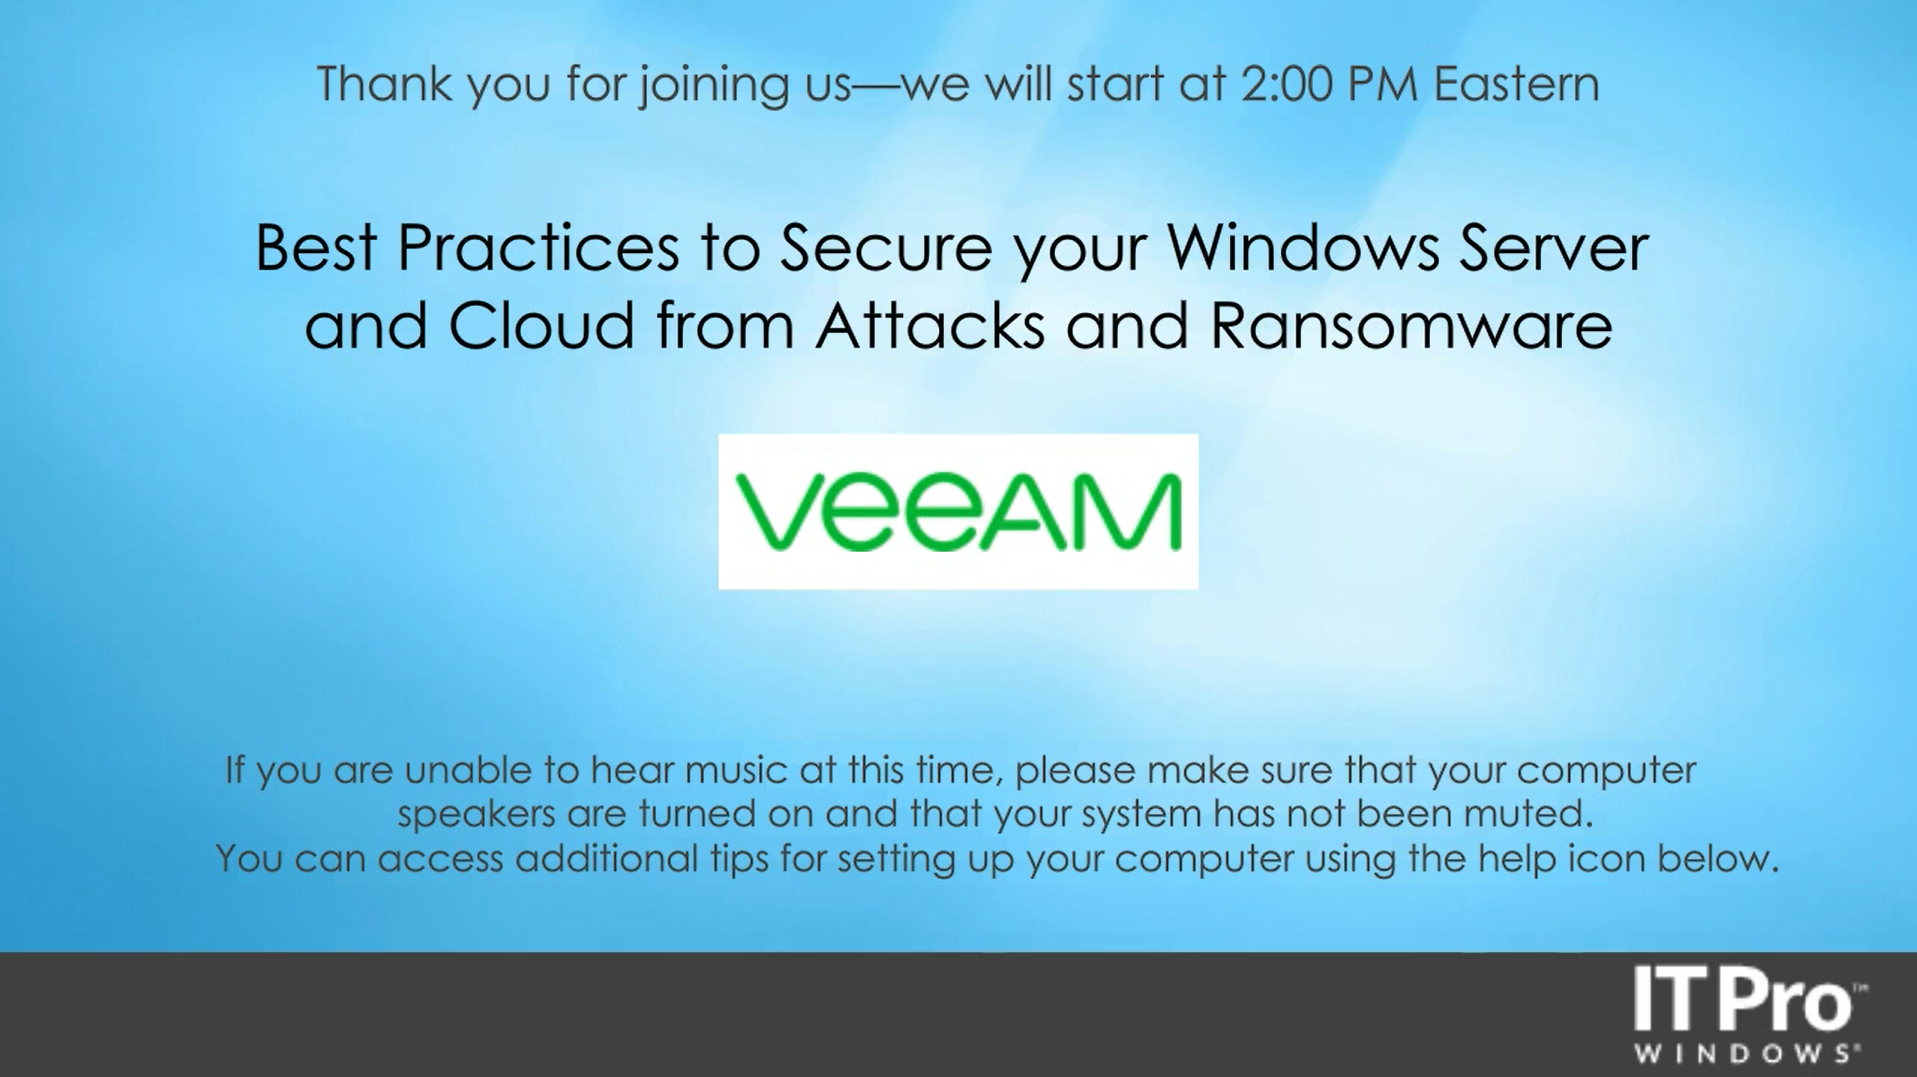 Ransomware Resiliency, Recoverability and Availability with Veeam